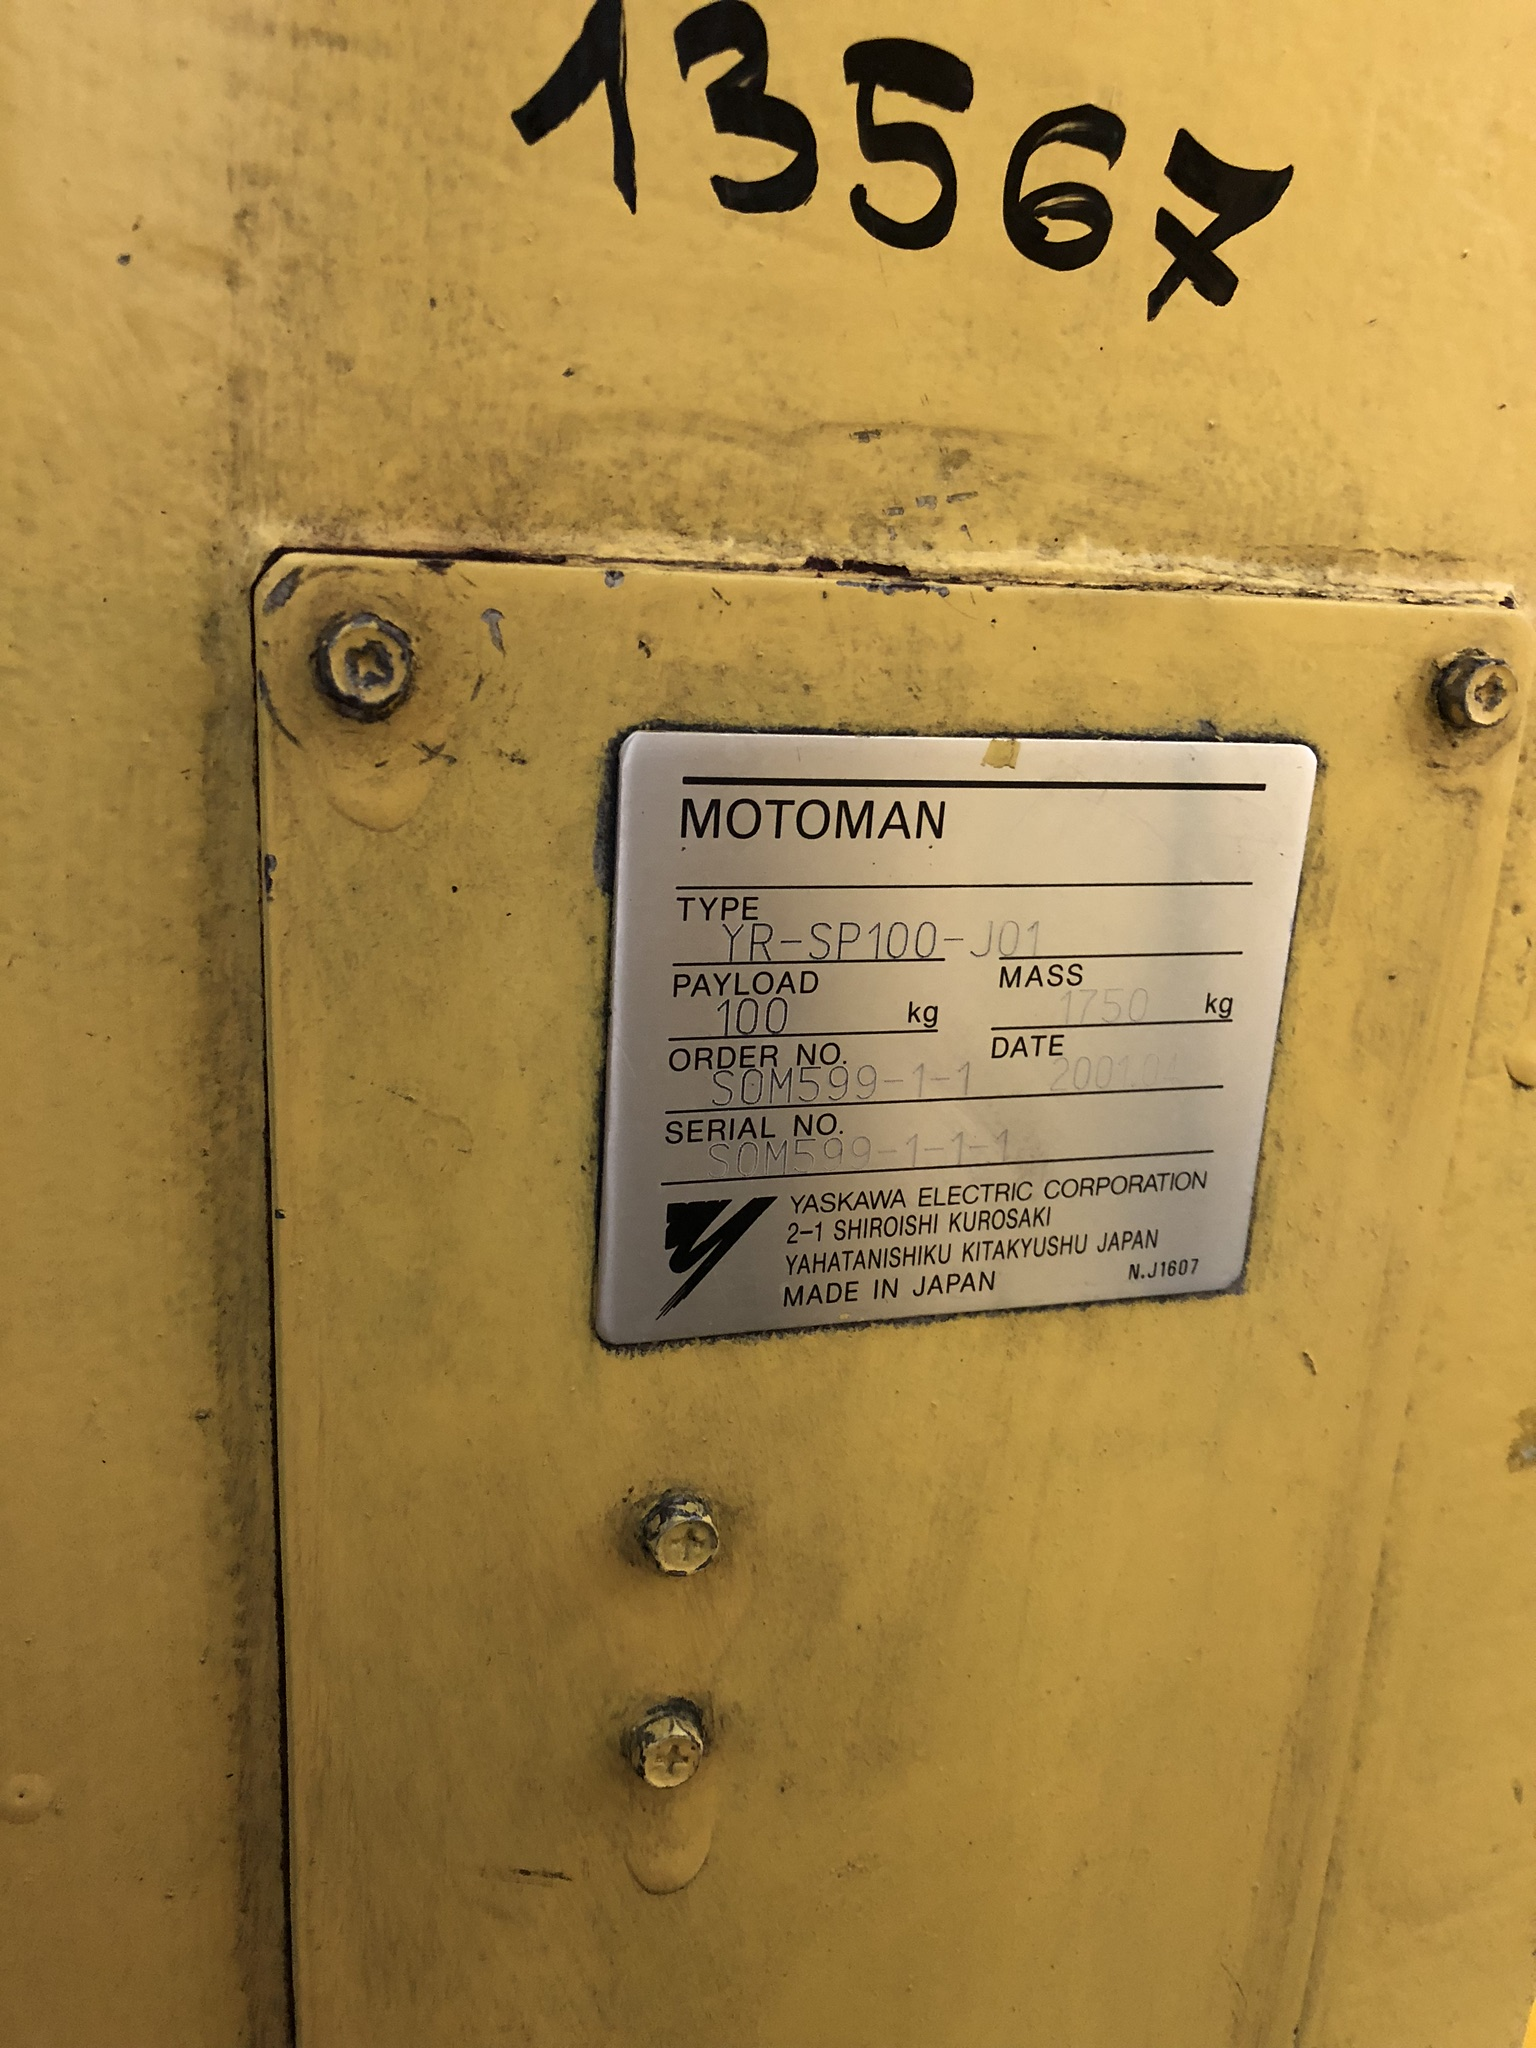 Lot 165 - Motoman YRSP100-J01 Robot Arms, serial no. SOM599-1-1-1, year of manufacture 2004, with hoses, 100kg